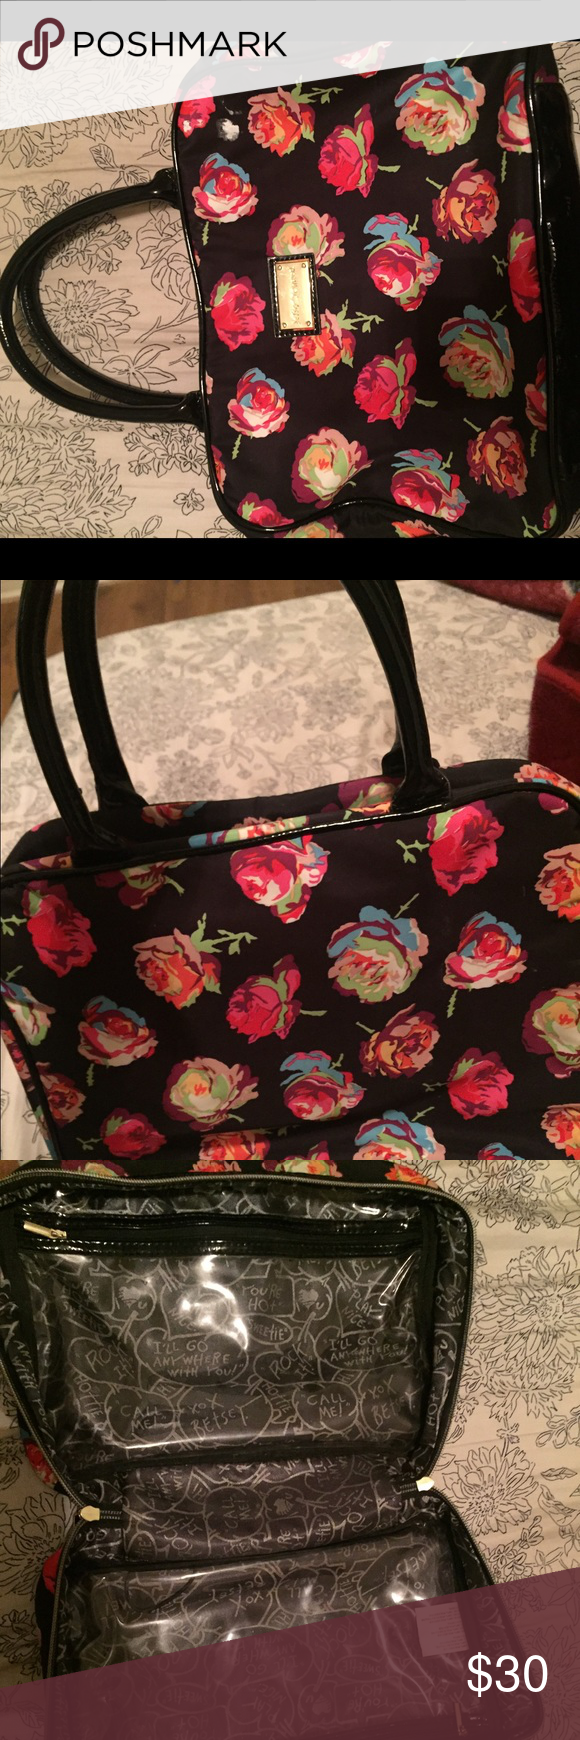 Betsey Johnson makeup bag (With images) Betsey johnson